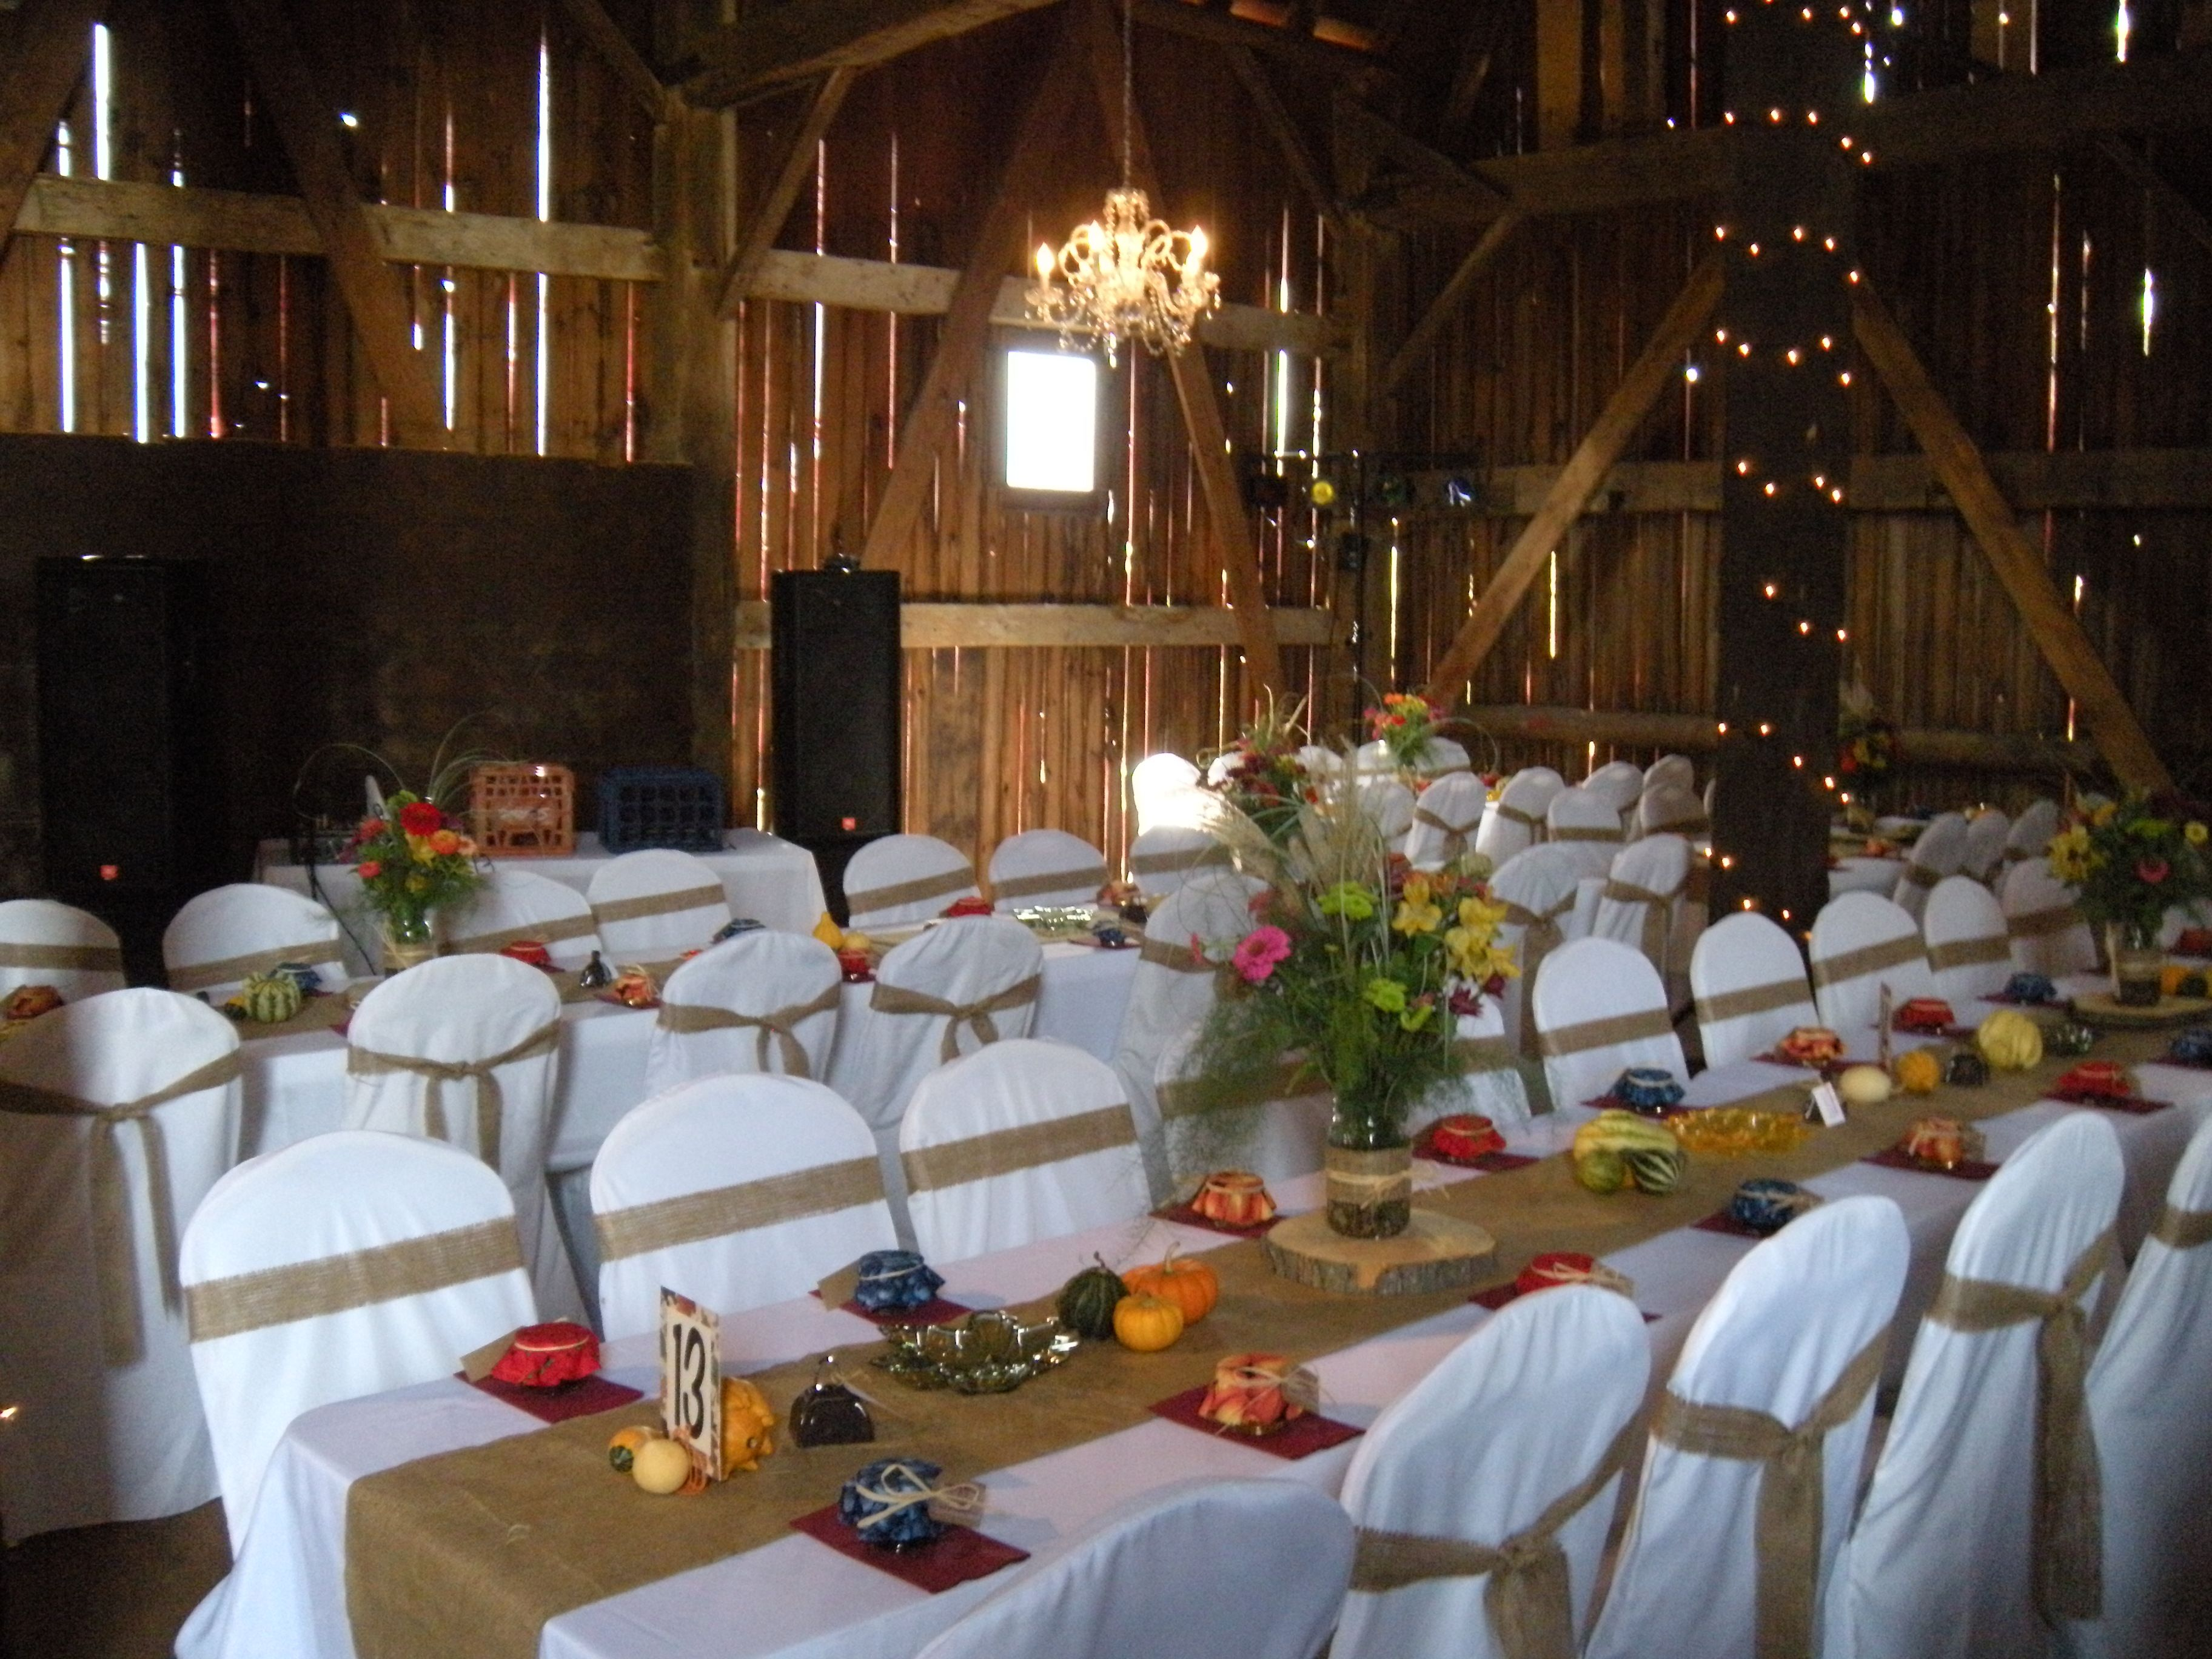 Just to show you the chairs these folks have the strips and also wedding table decoration ideas using burlap with barn burlap table runners for rustic wedding ideas junglespirit Gallery